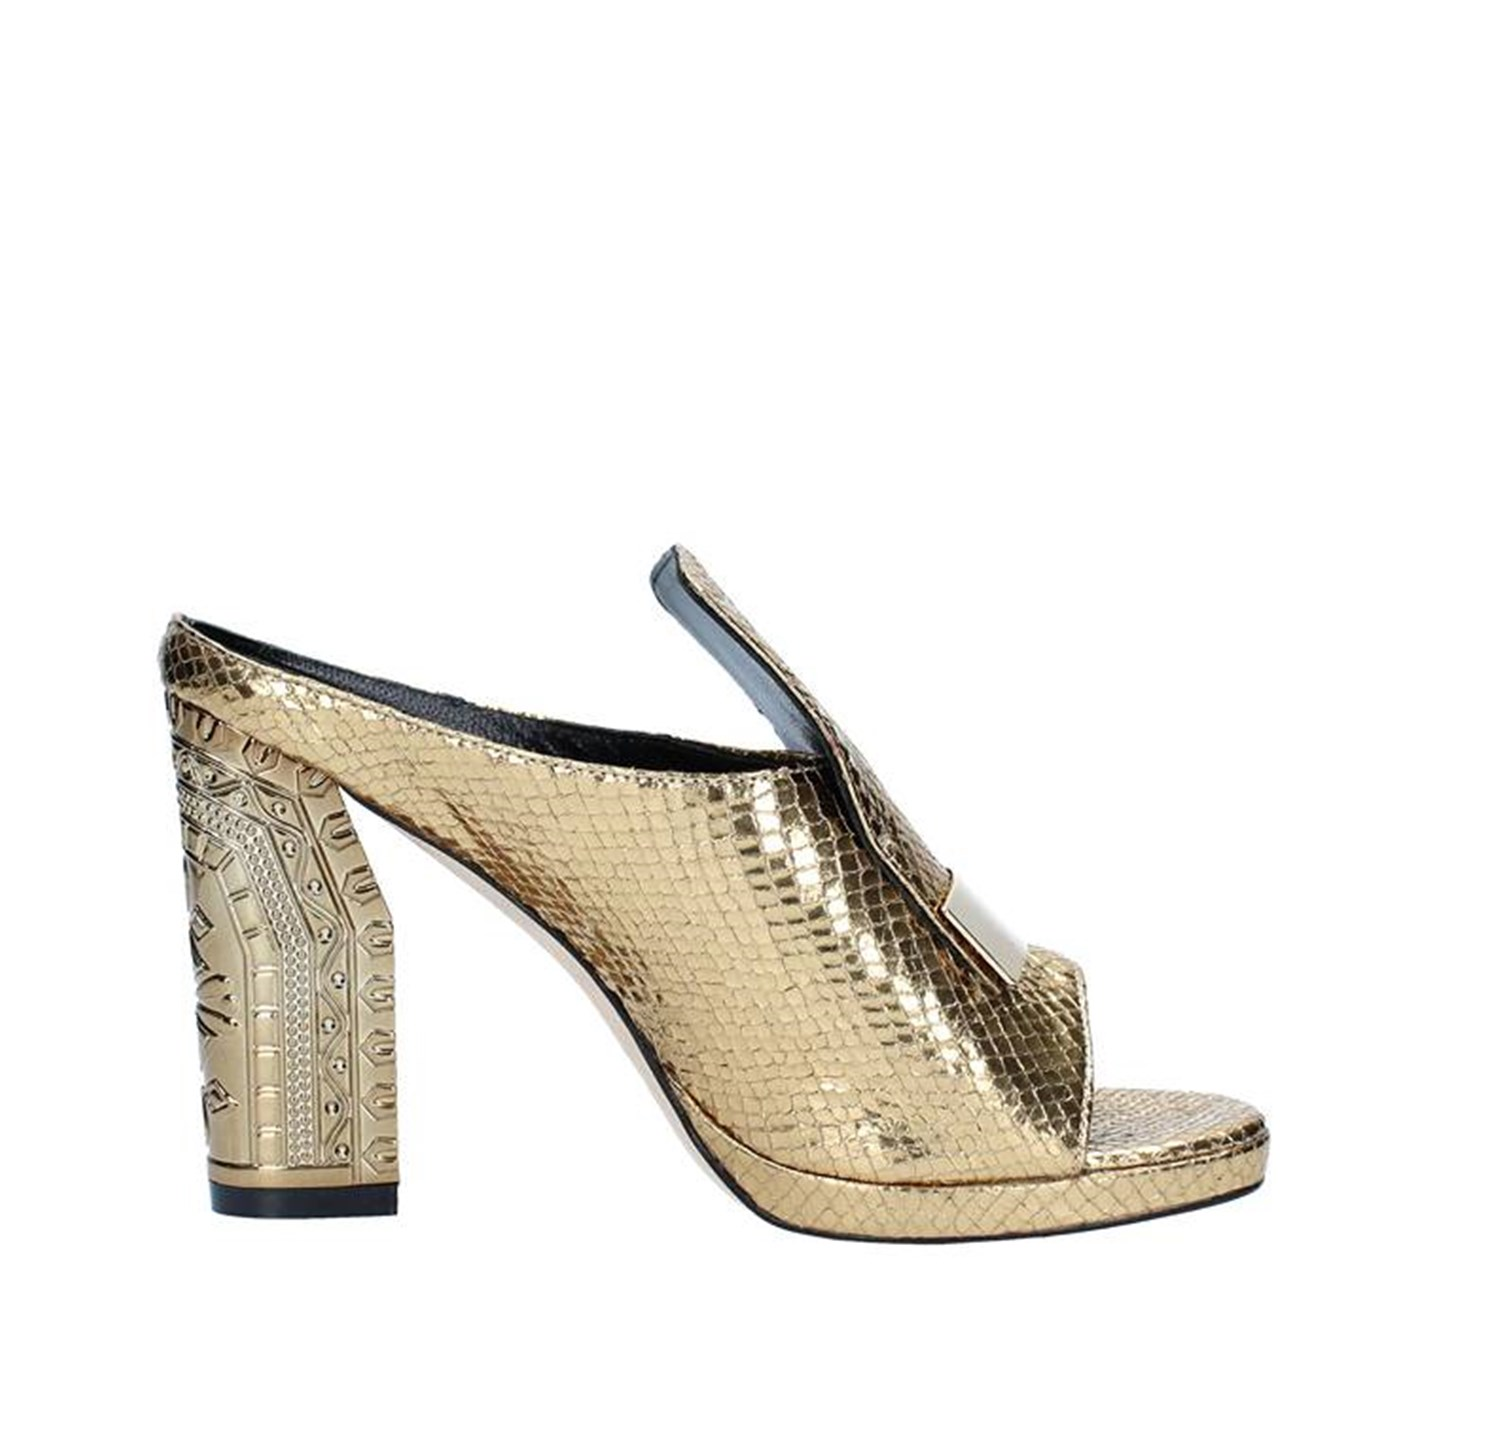 Norah Shoes Woman With heel YELLOW SPL18